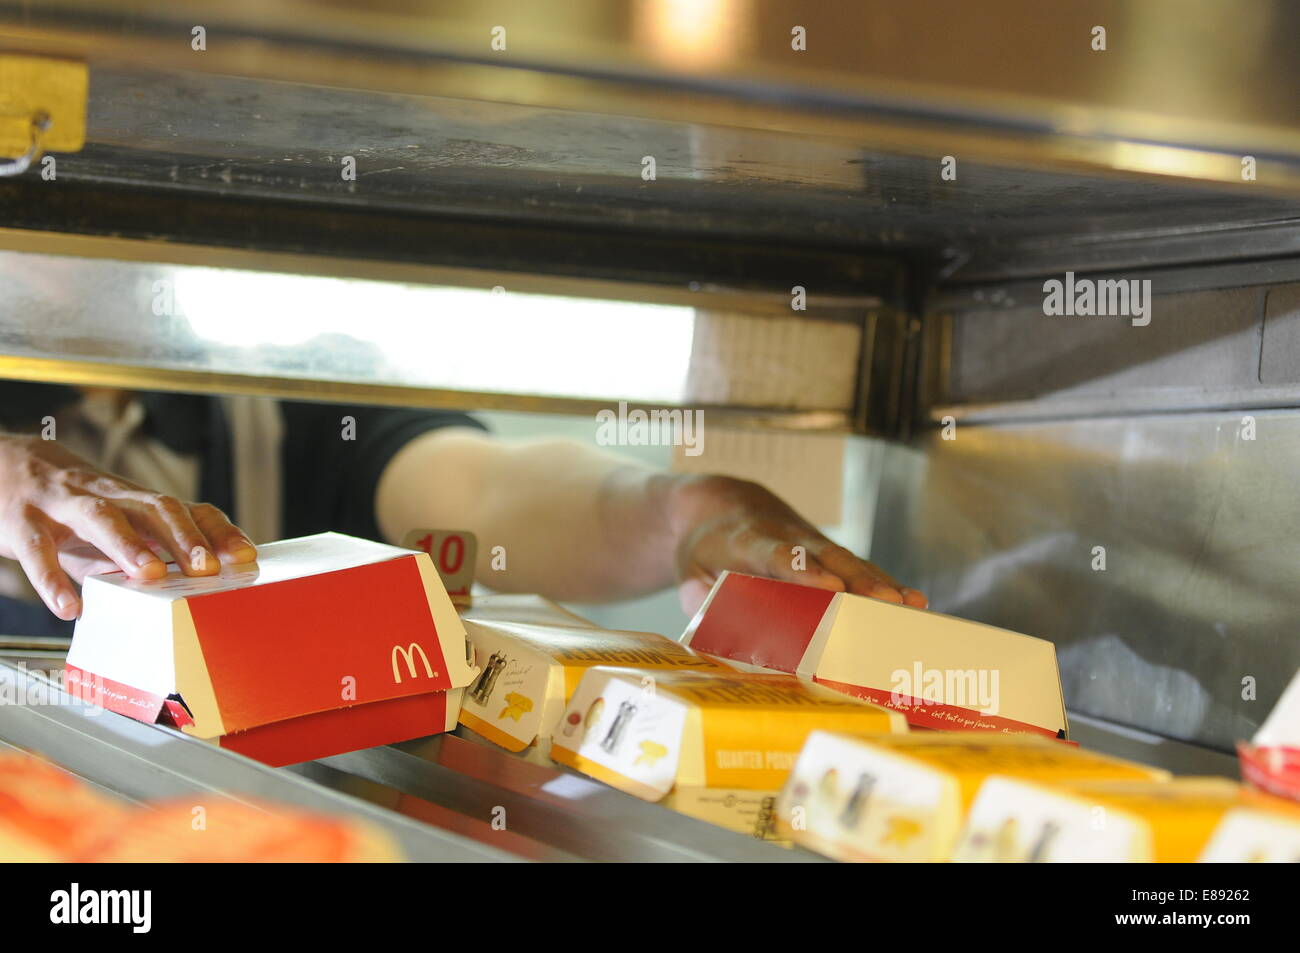 McDonald's worker employee working at a McDonald's fast food restaurant. - Stock Image